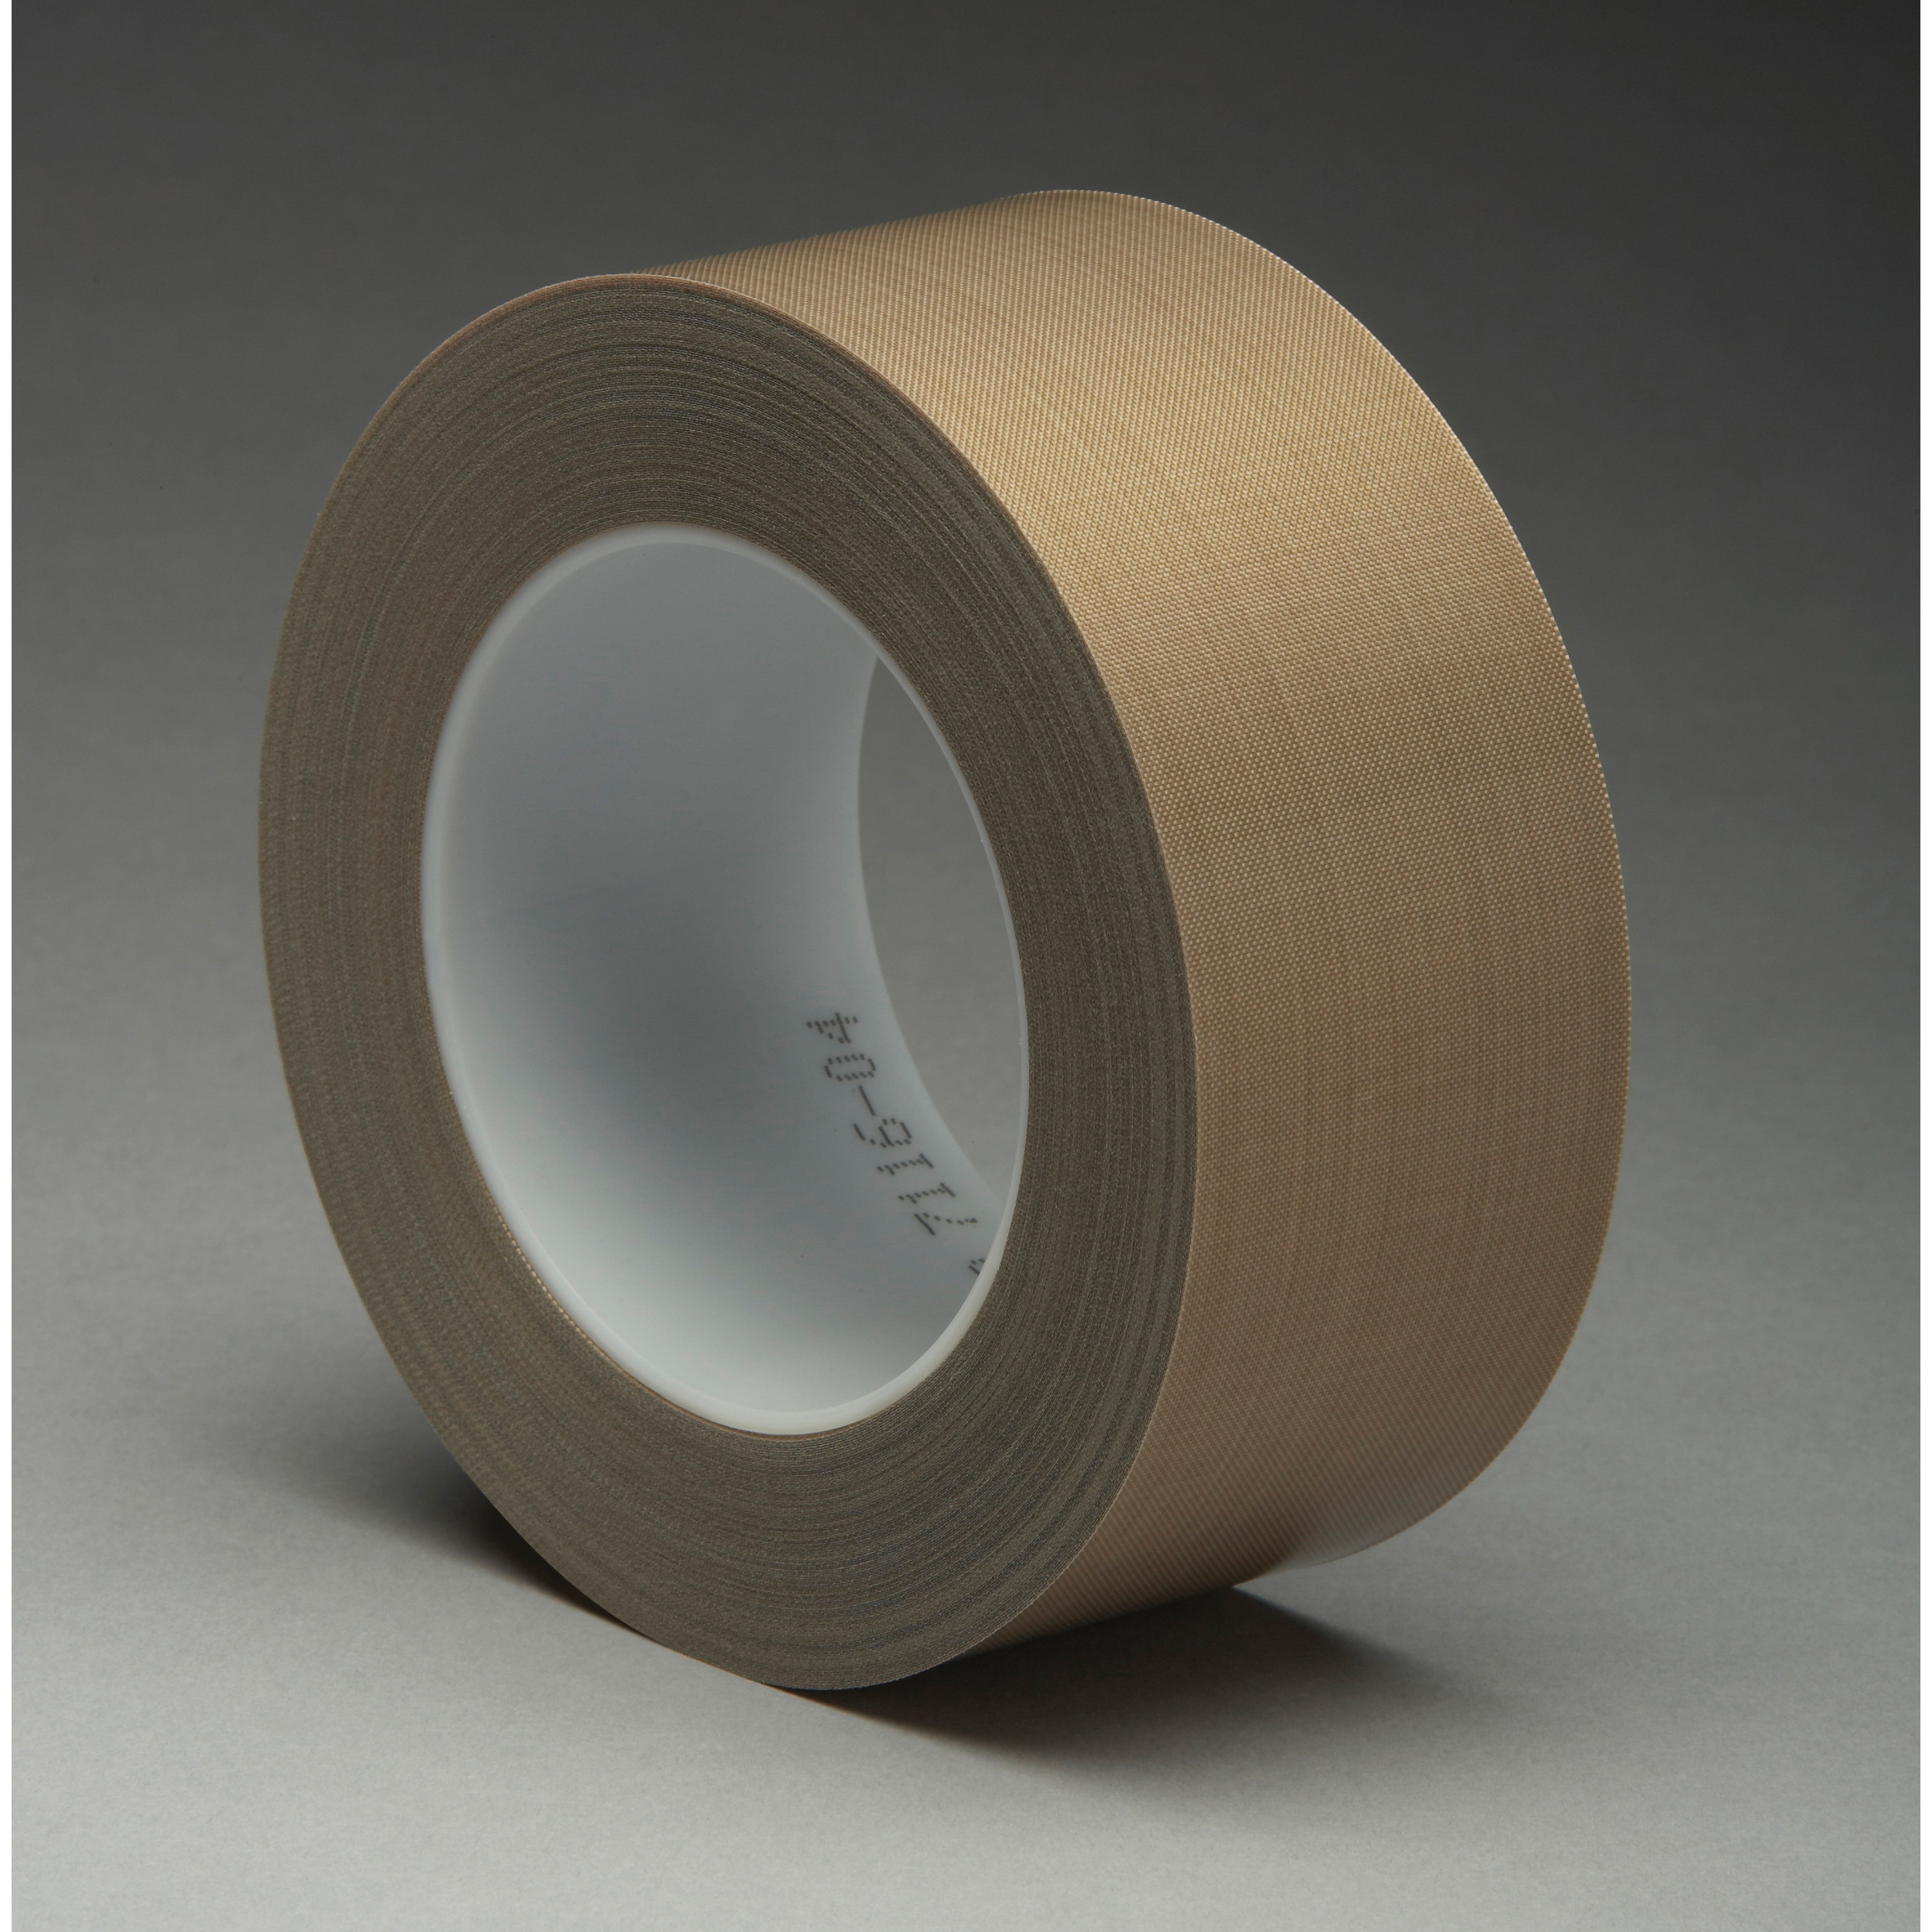 3M™ 021200-16158 Pressure Sensitive Glass Cloth Tape, 36 yd L x 1/2 in W, 8.2 mil THK, Silicon Adhesive, Woven Glass Cloth Impregnated with PTFE Backing, Brown